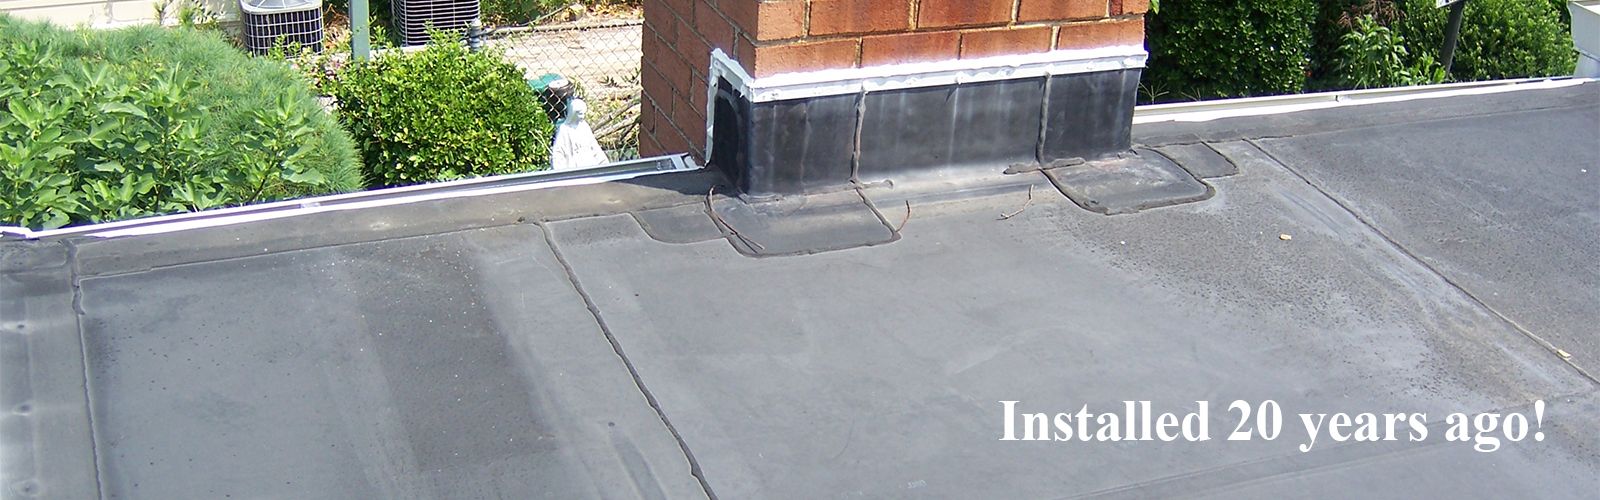 Residential EPDM Flat Roof Install over 20 years ago